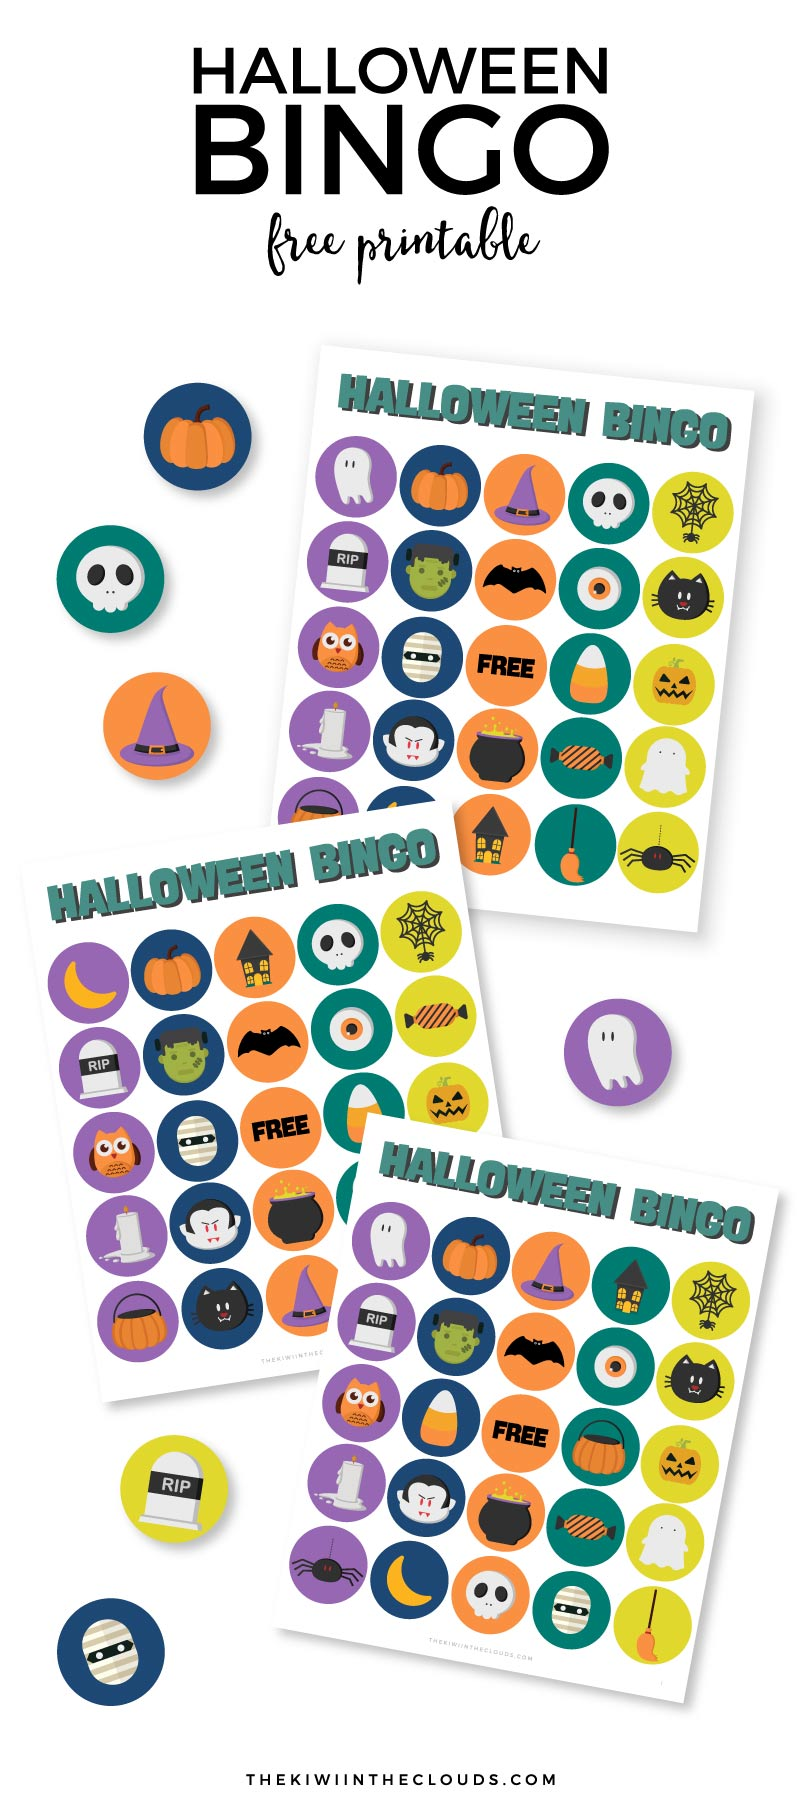 photo about Free Printable Halloween Bingo named The Most straightforward Halloween Bingo Playing cards for Small children (Free of charge Printable)